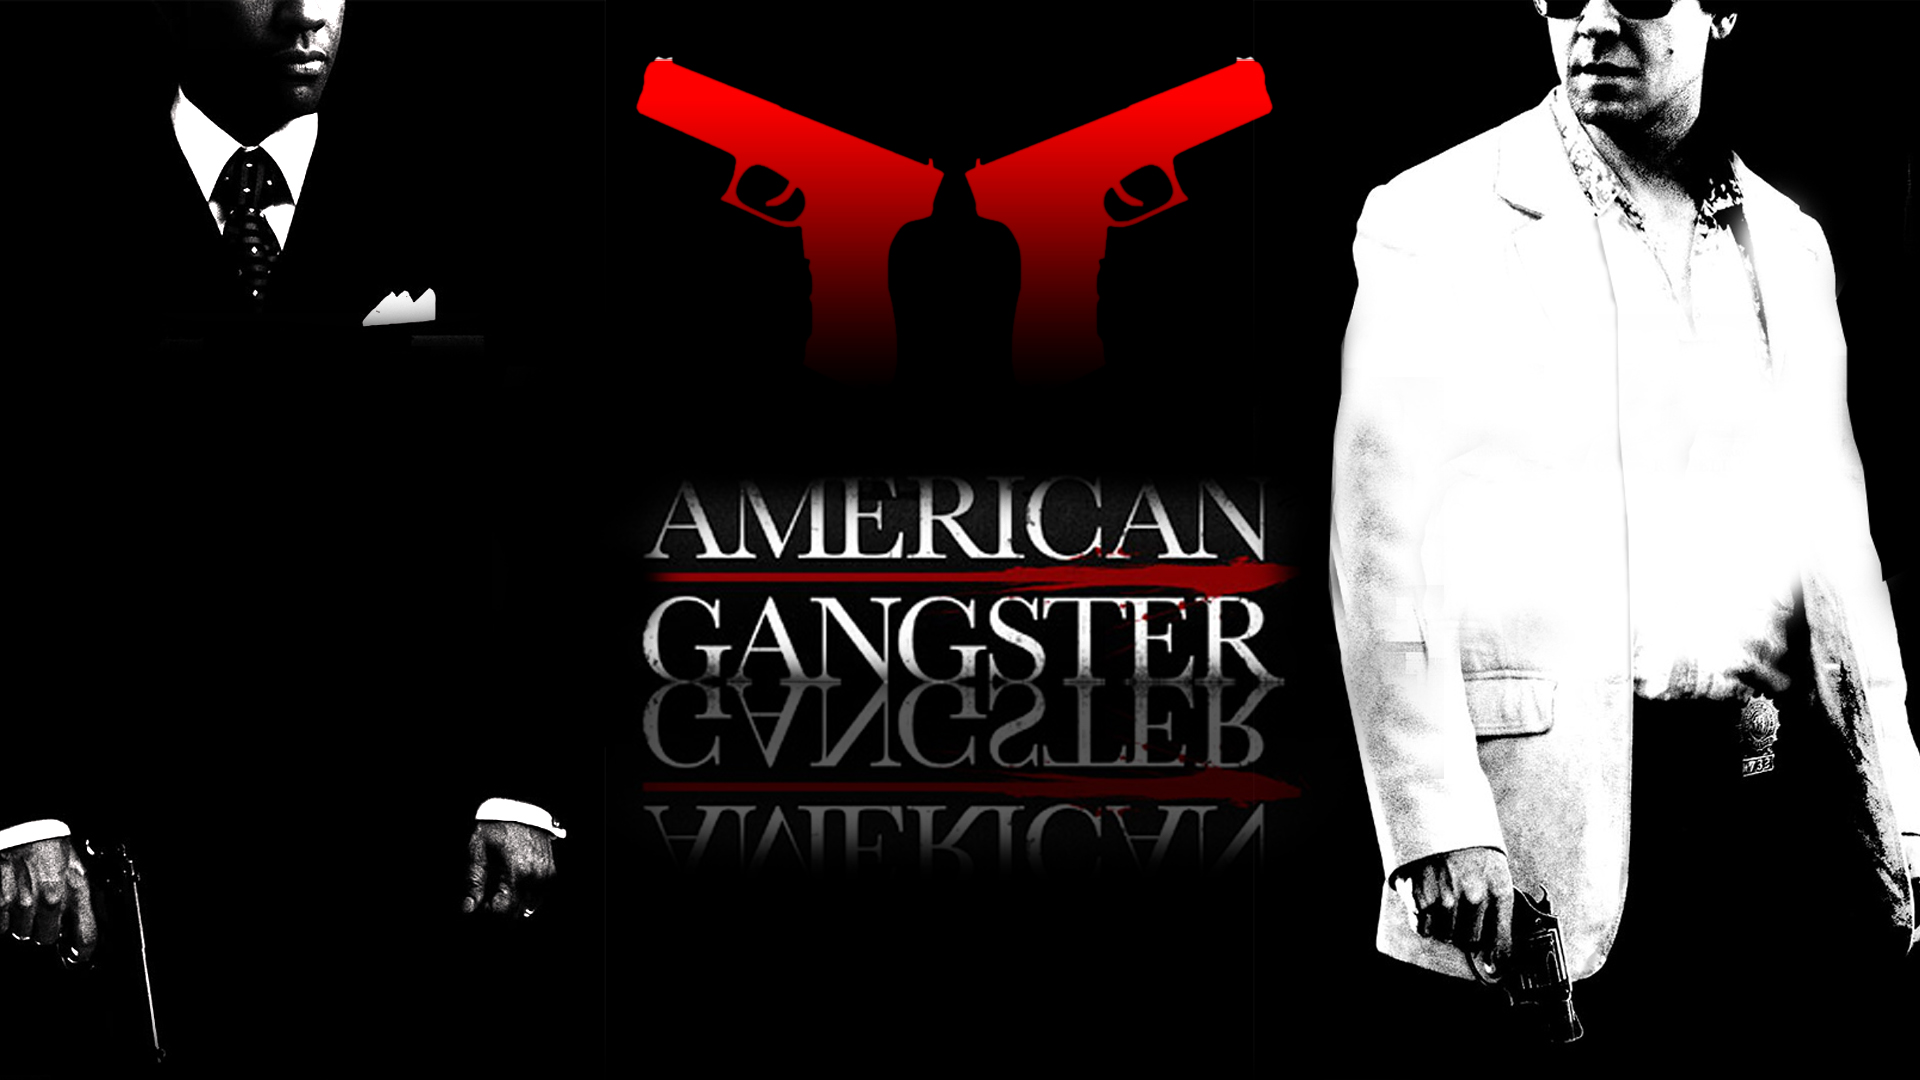 psucomAmerican Gangster  theme 264php 1920x1080